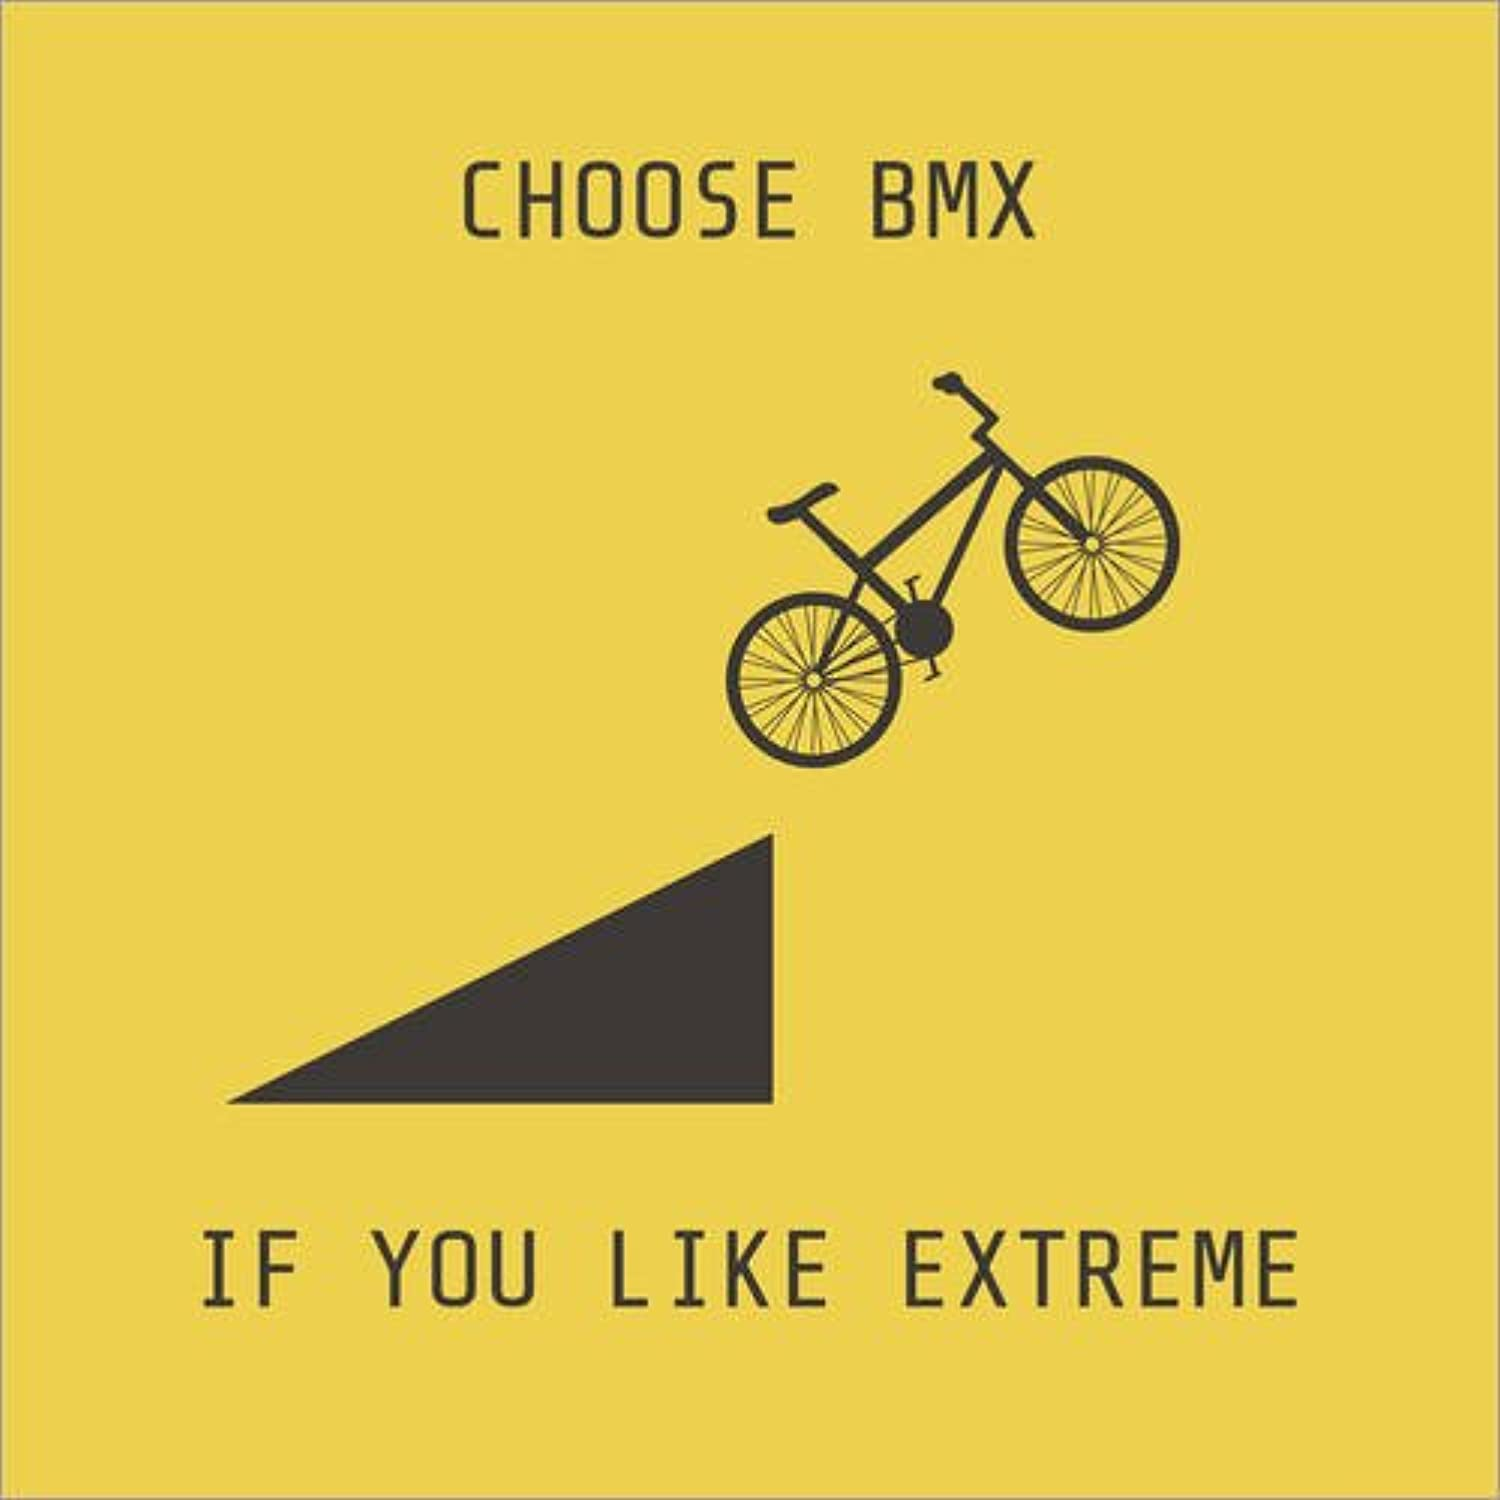 Posterlounge Cuadro de Madera 60 x 60 cm  BMX for Extreme Athletes de Kidz Collection Editors Choice